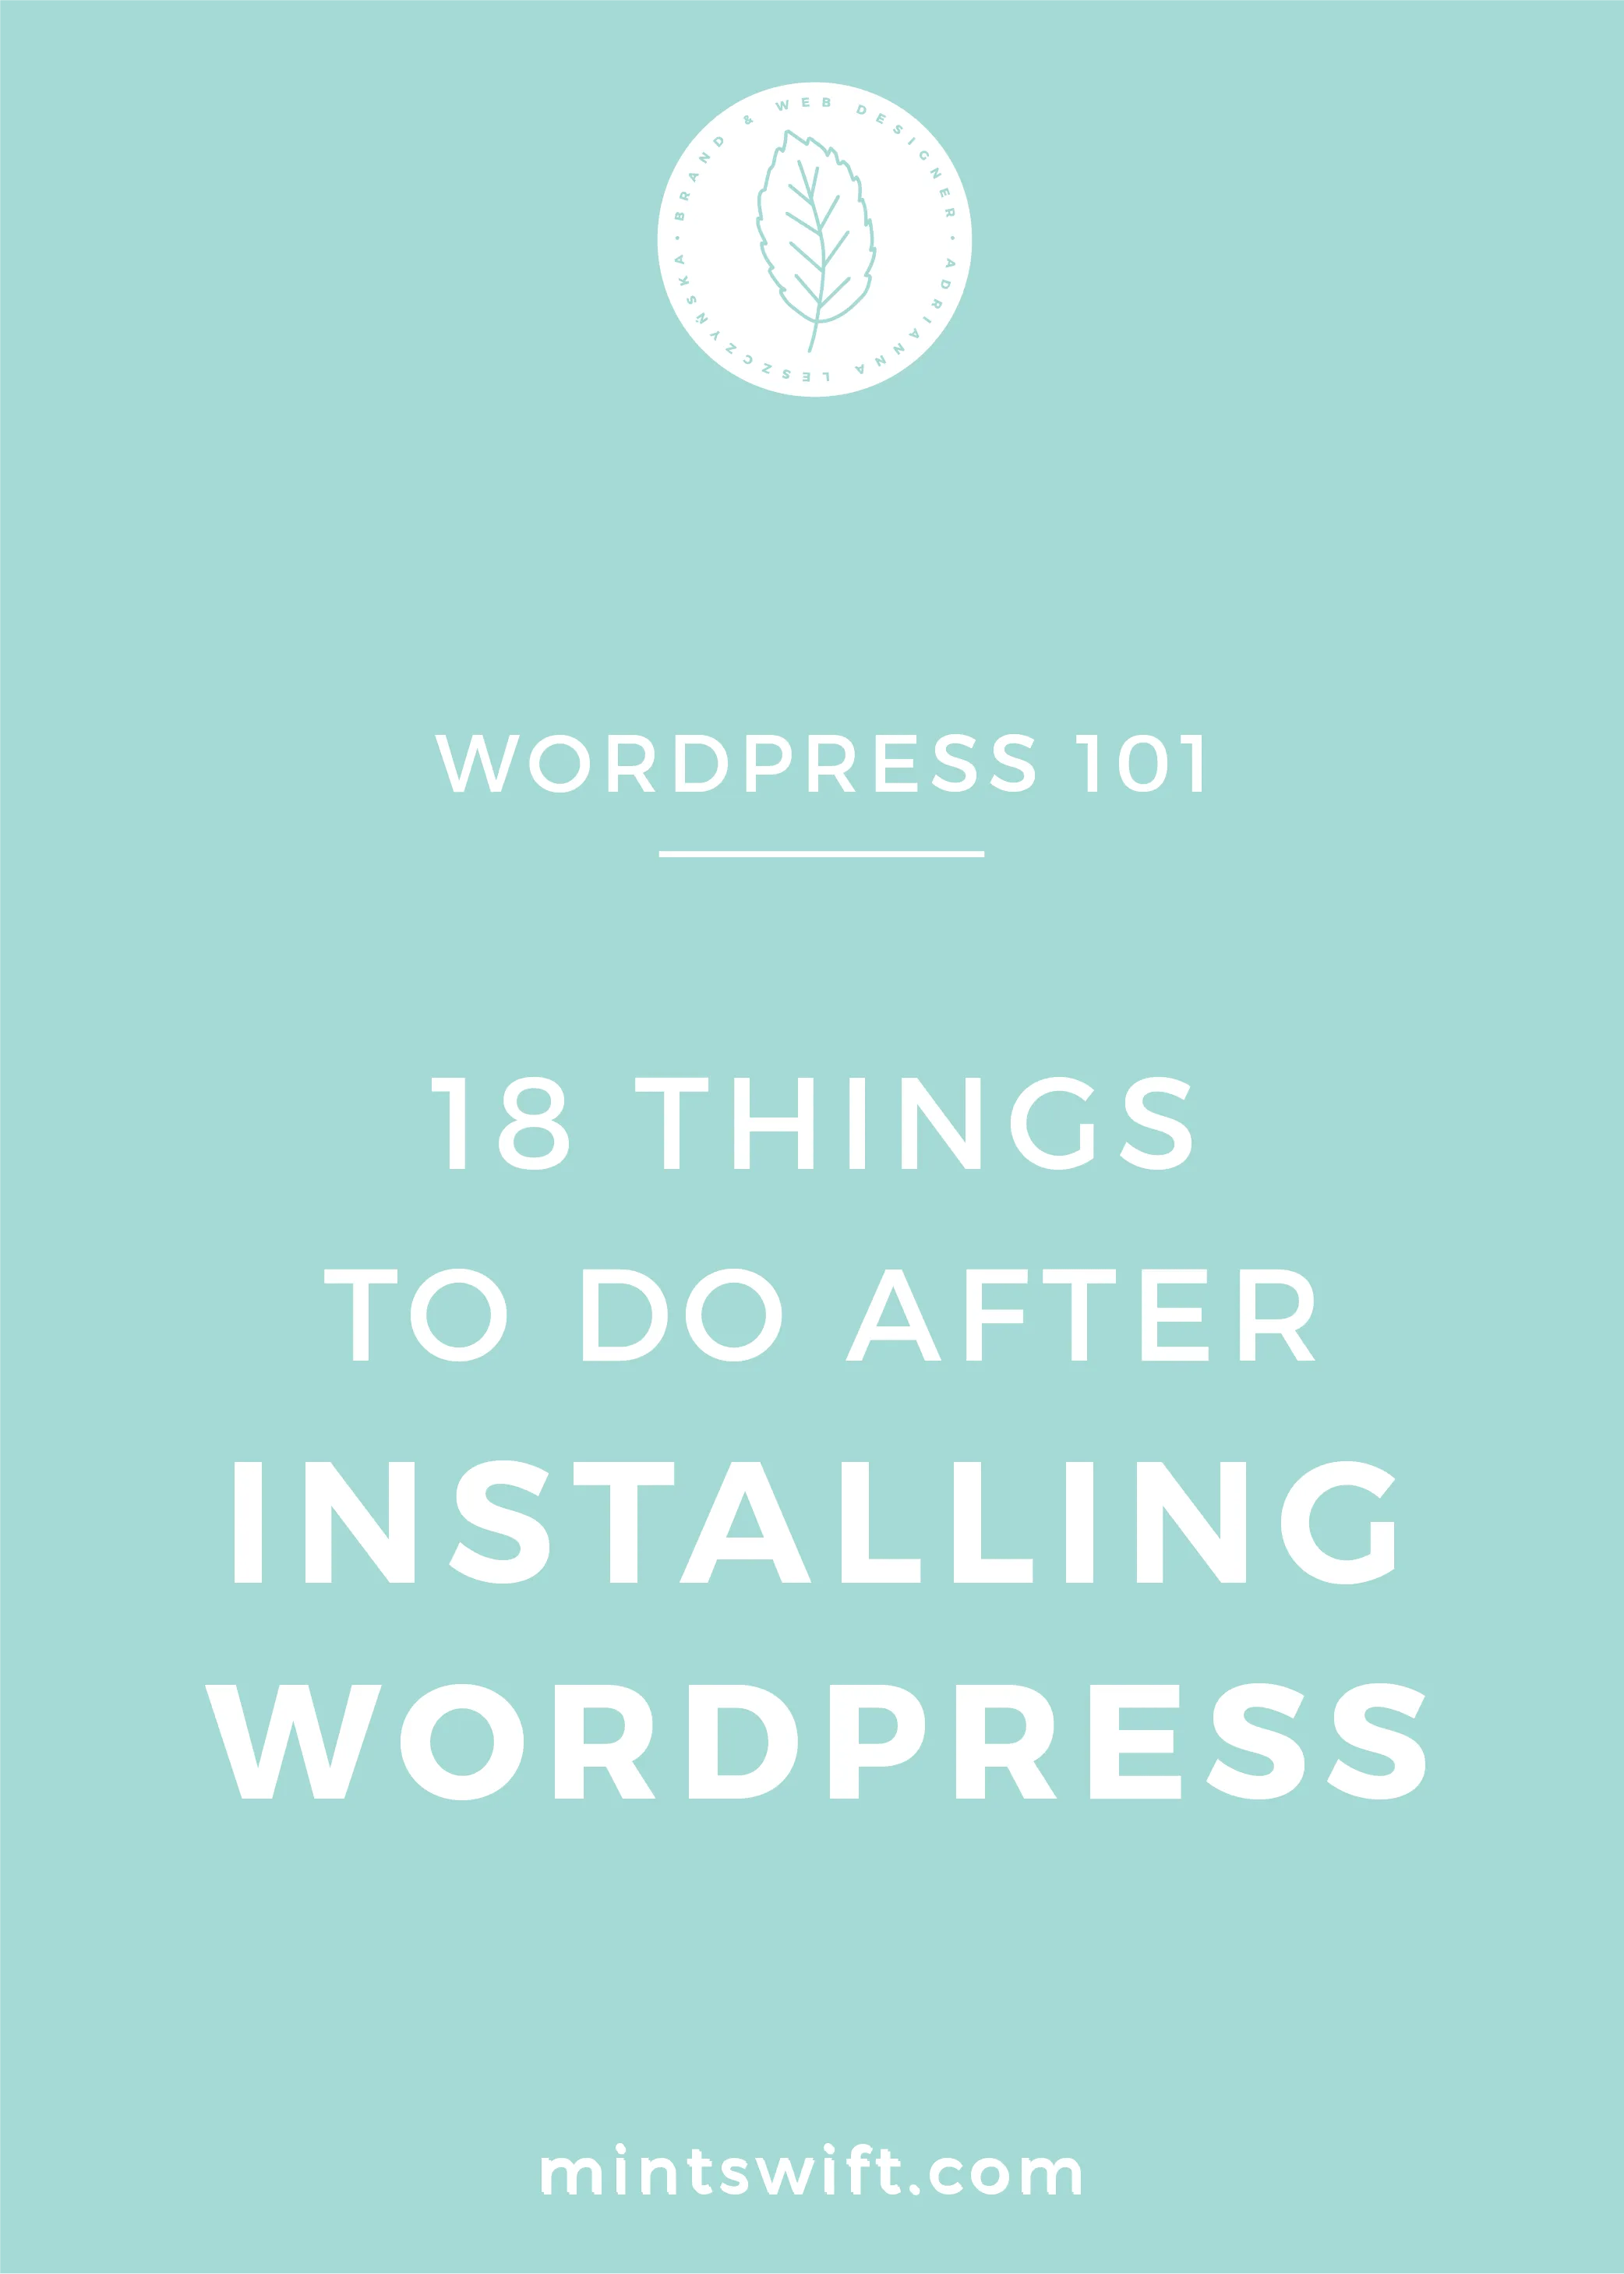 18 Things to Do After Installing WordPress